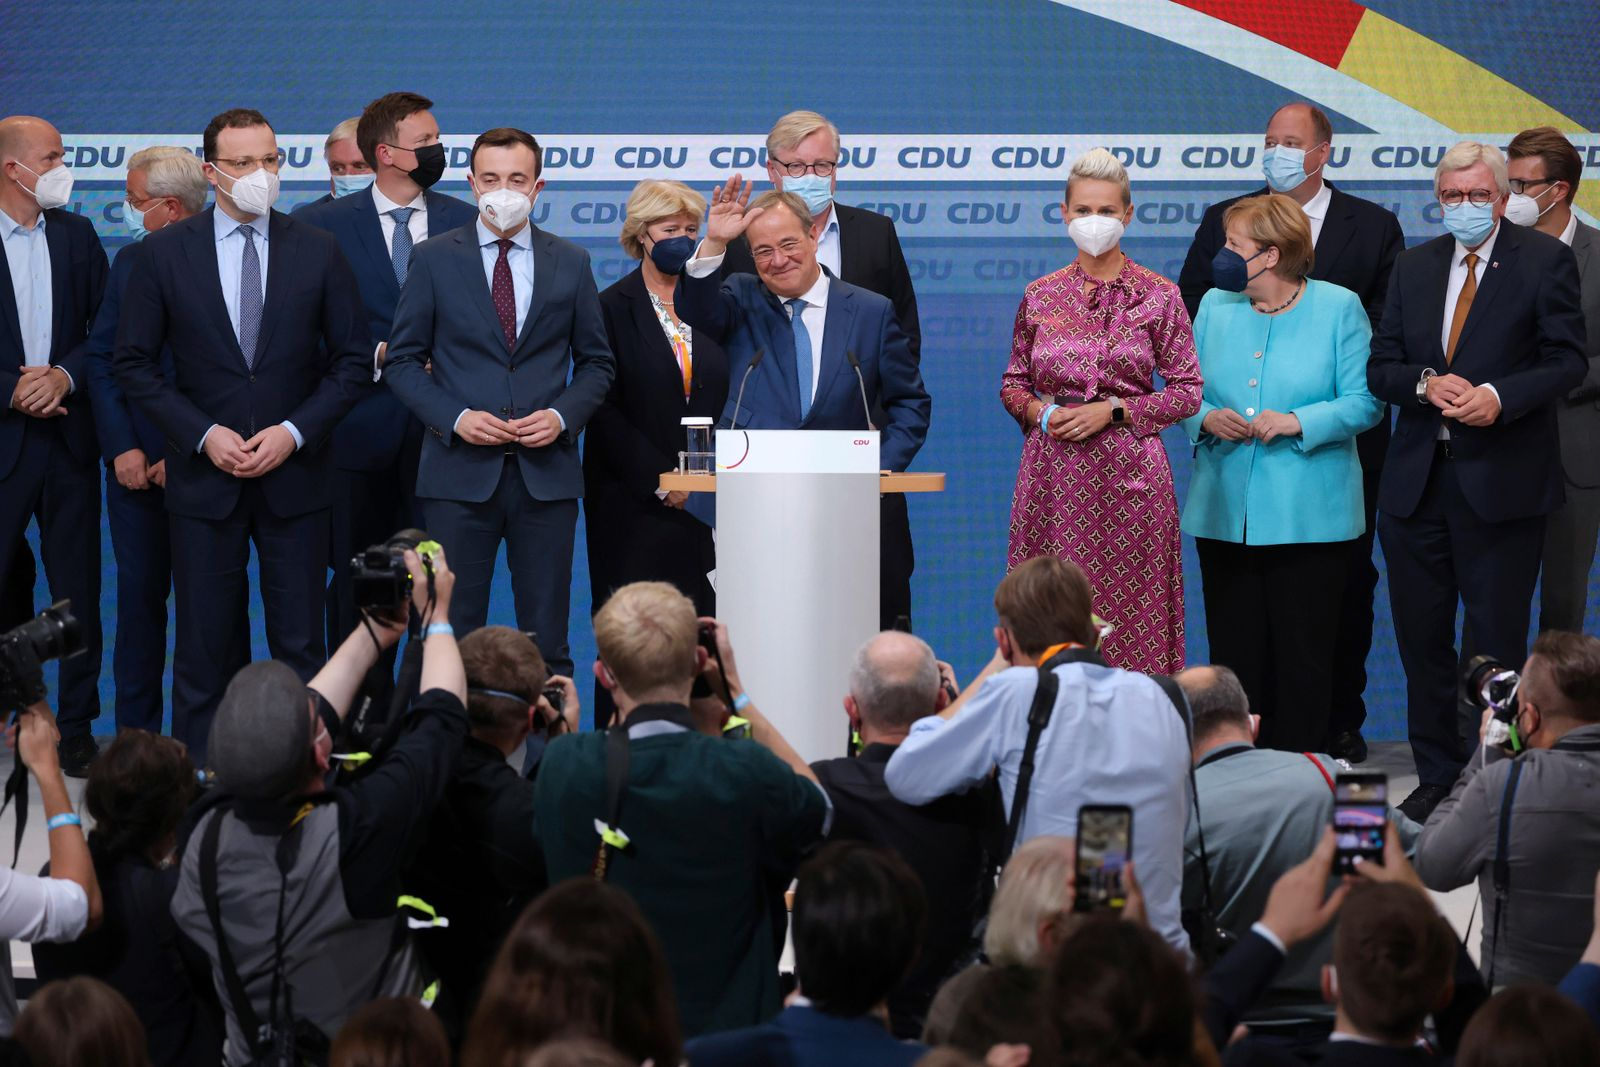 Christian Democrats (CDU) React To Election Results